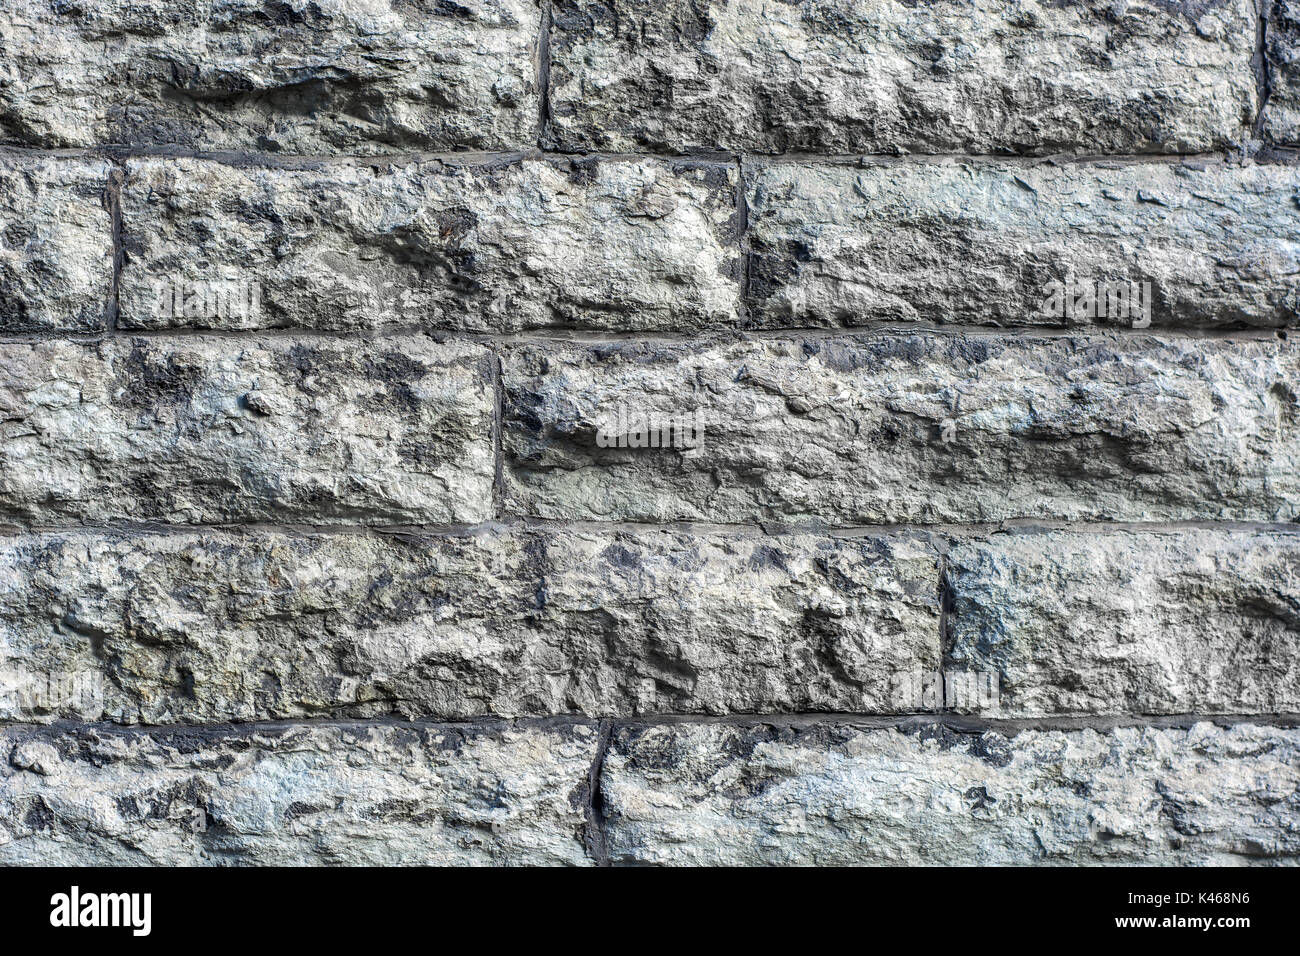 The image of a fragment of masonry wall of rough, gray, rough stone to use as a background. - Stock Image